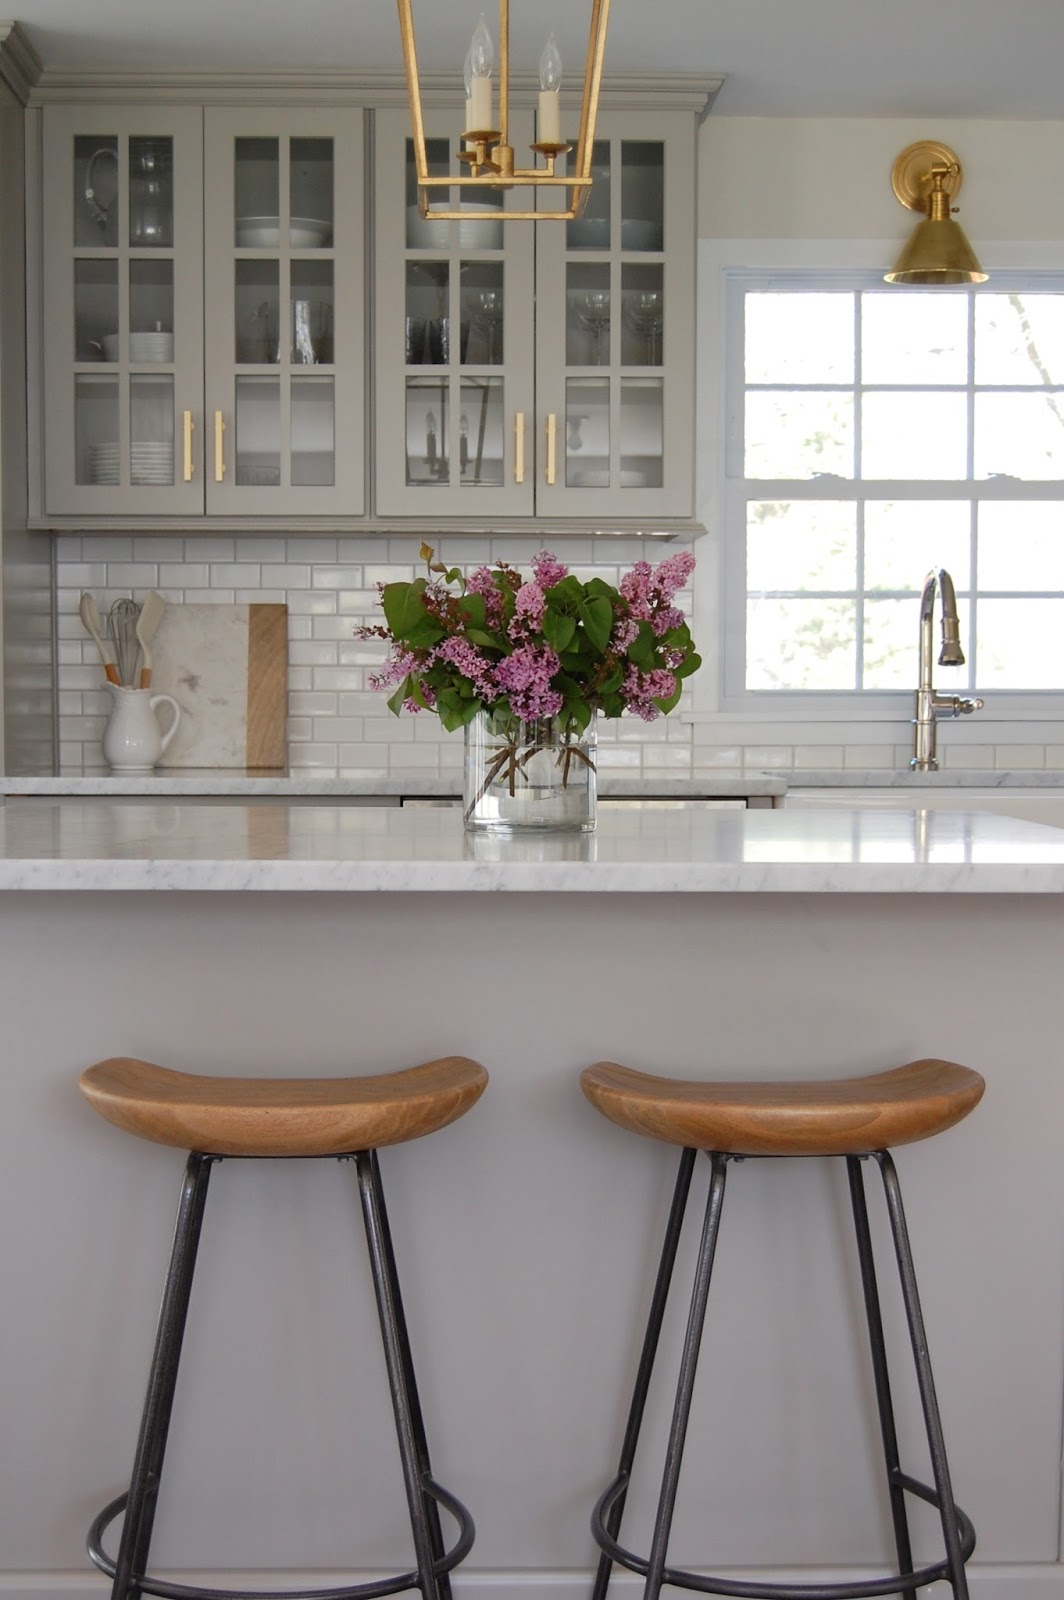 Gray glass-front kitchen cabinets.